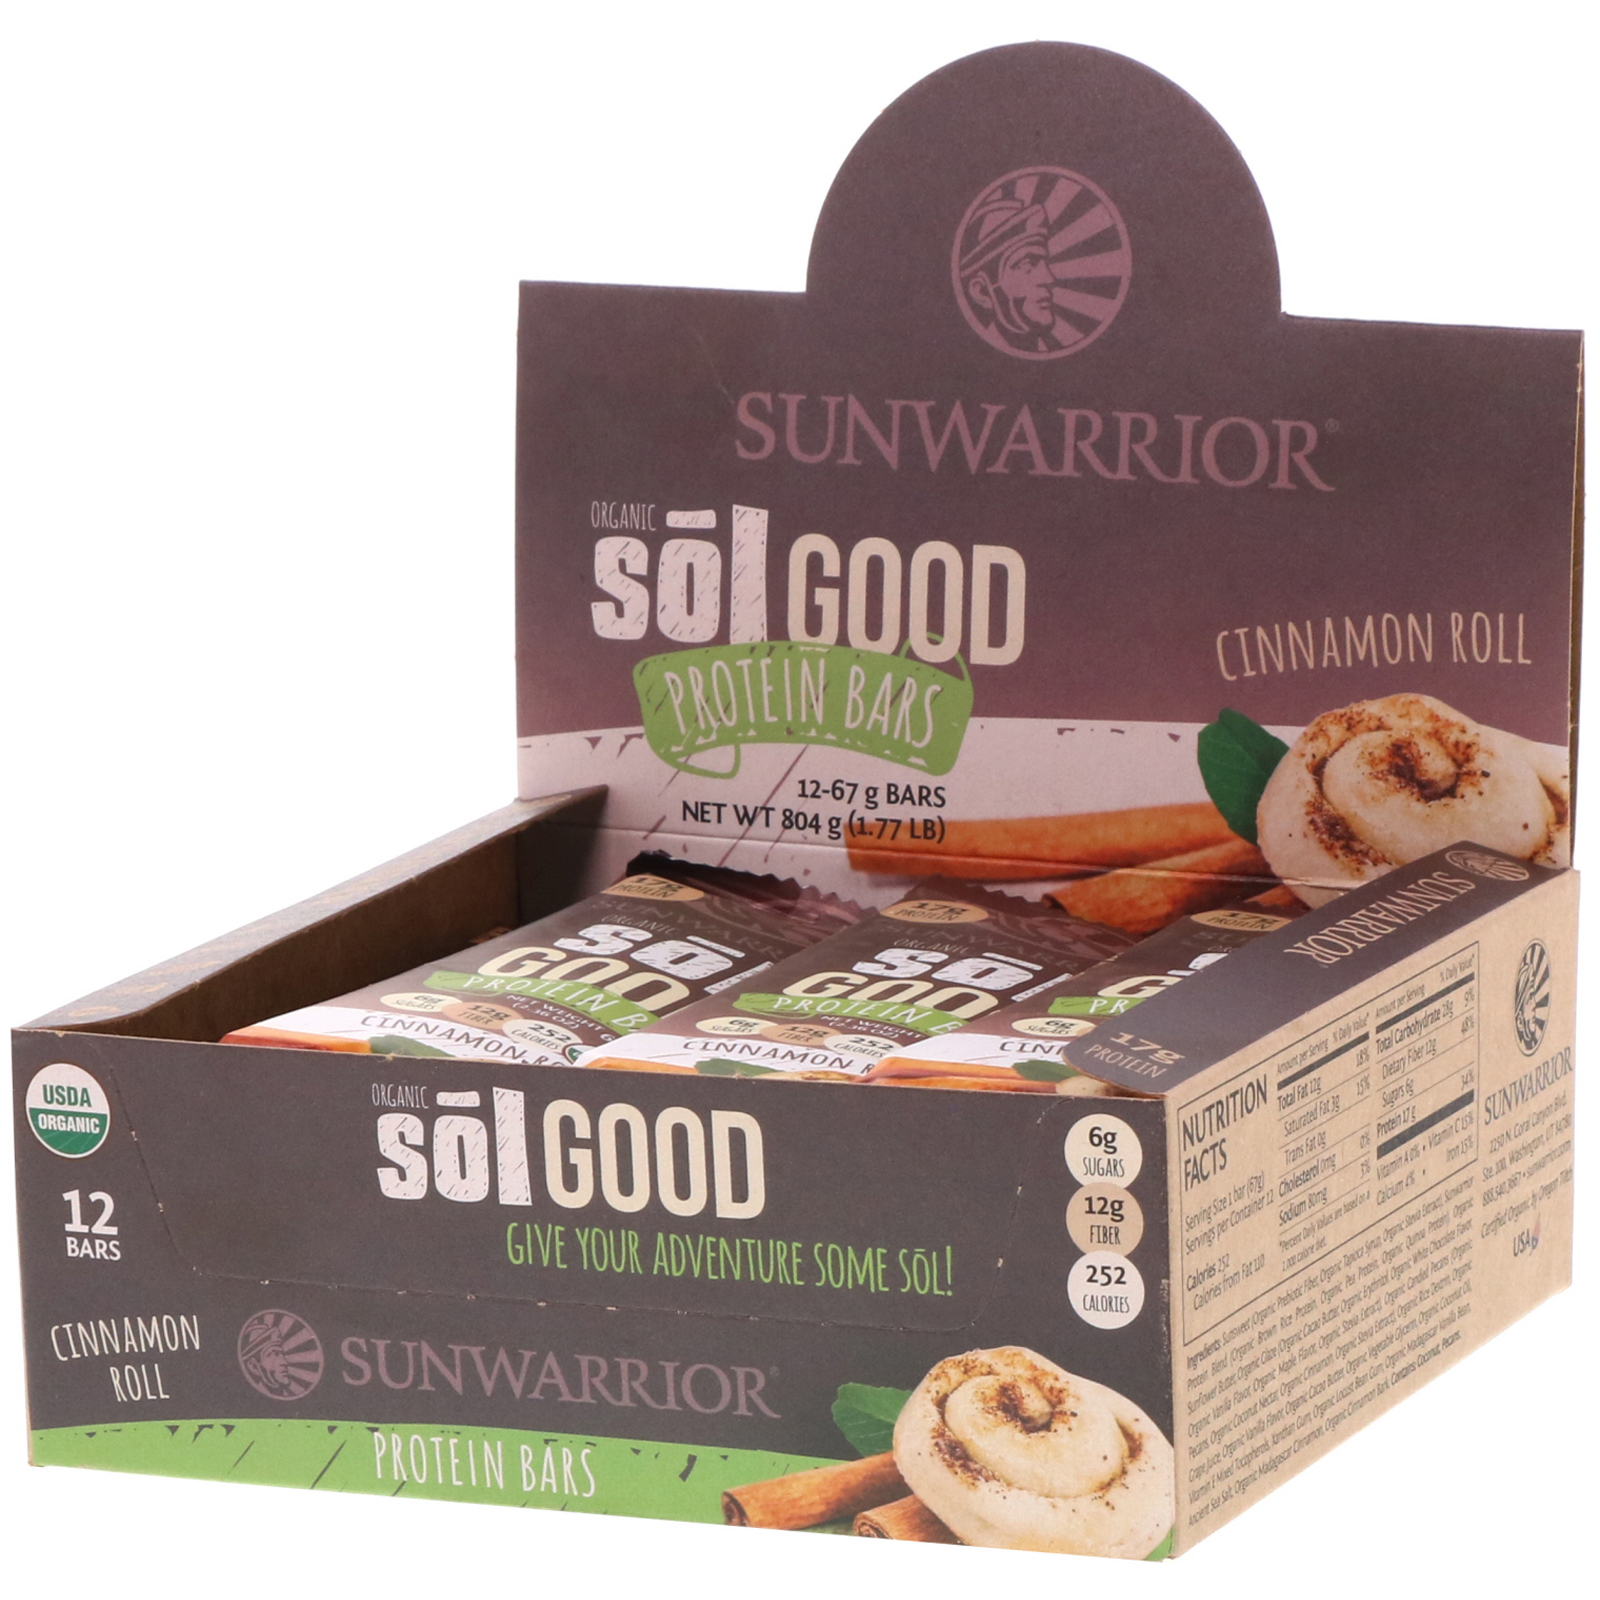 Sunwarrior, Organic Sol Good Protein Bars, Cinnamon Roll, 12